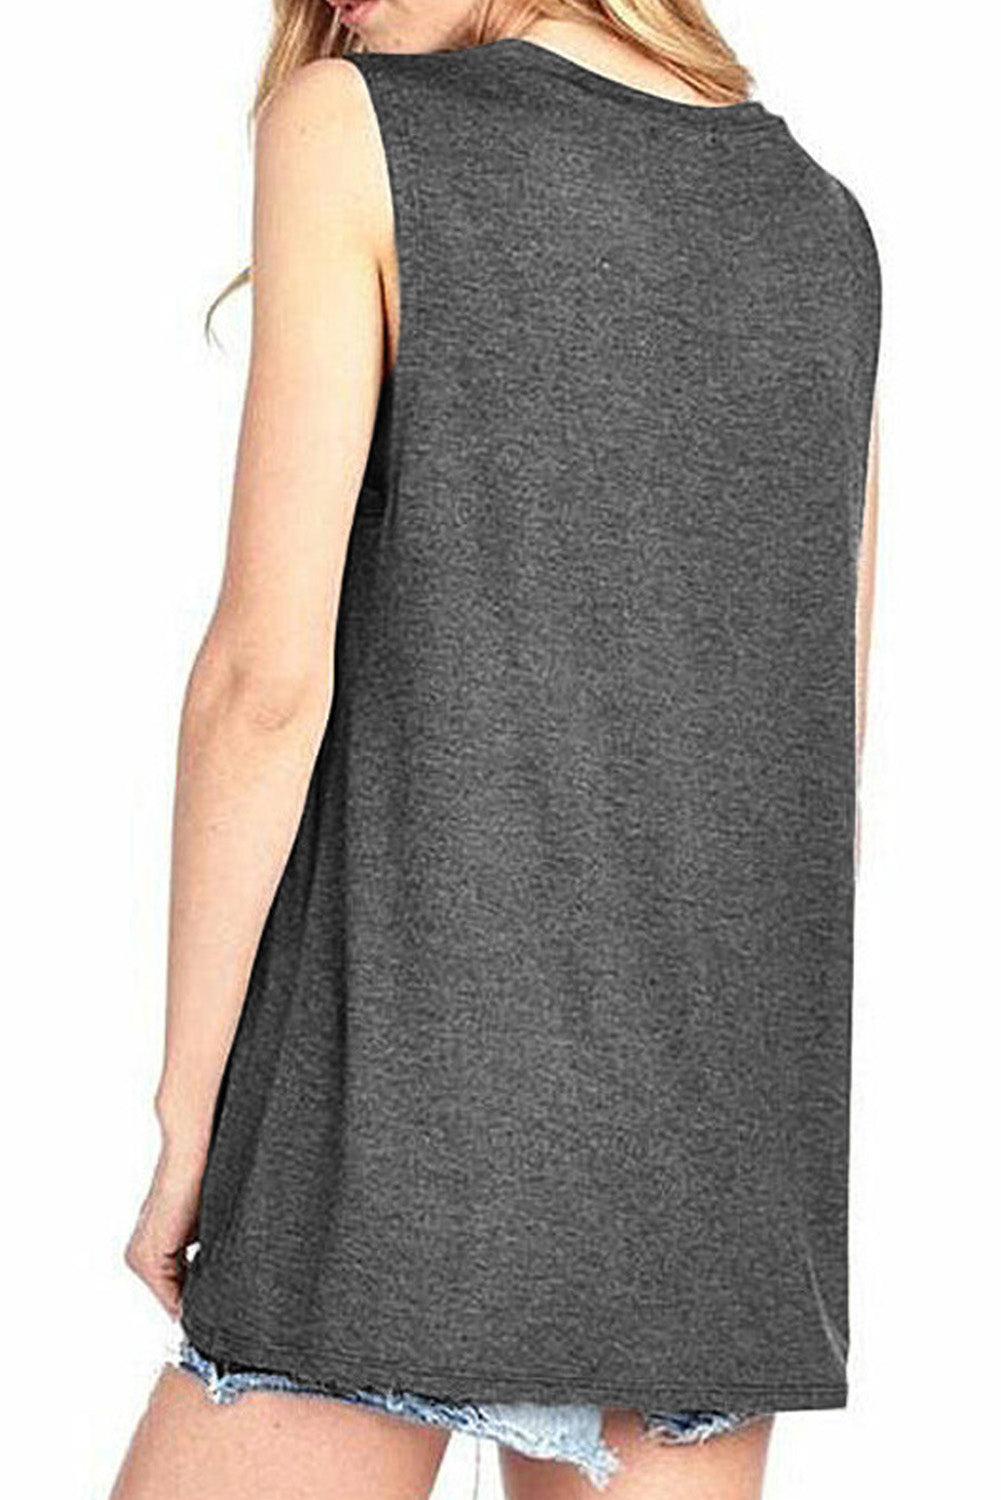 Beer Me Casual Gray Tank